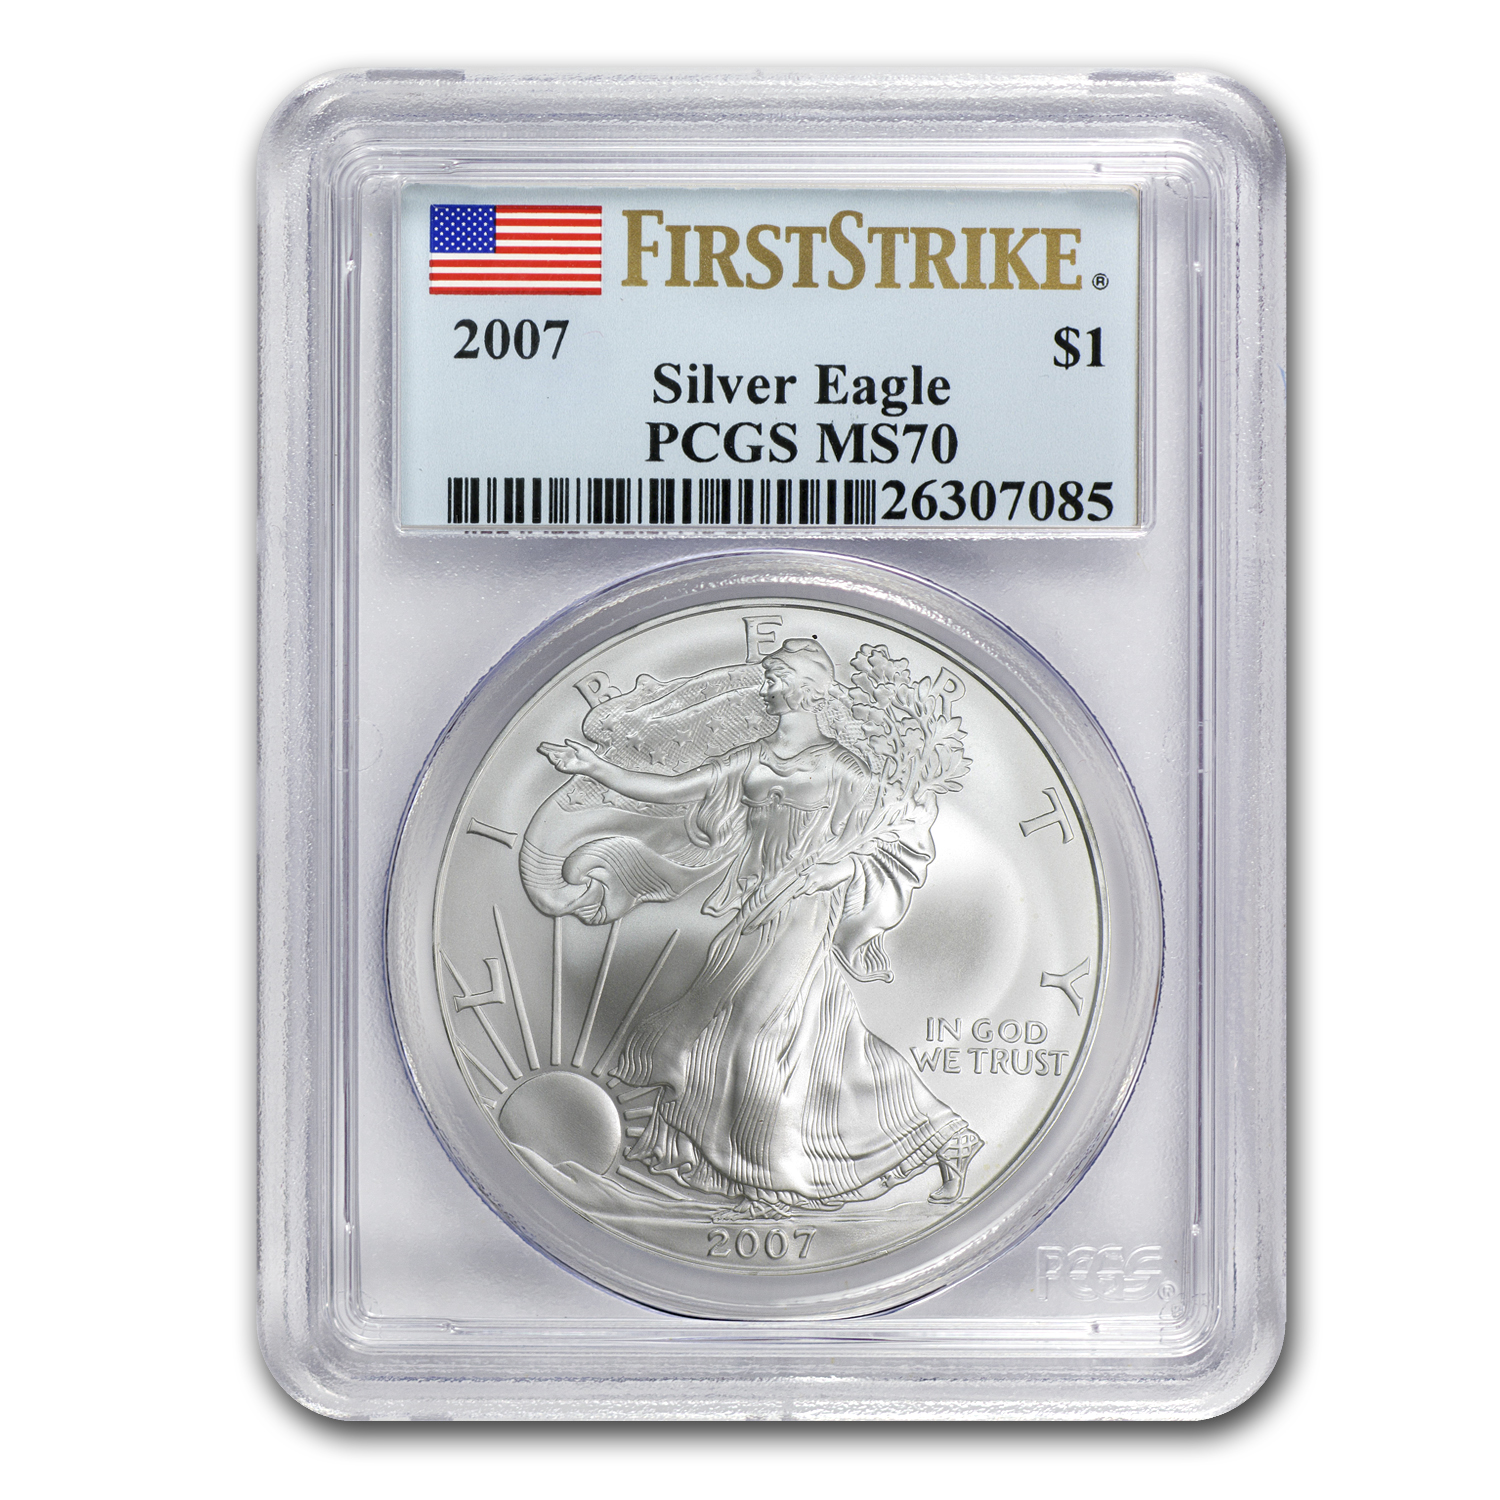 2007 Silver Eagle - MS-70 PCGS - First Strike - Registry Set Coin